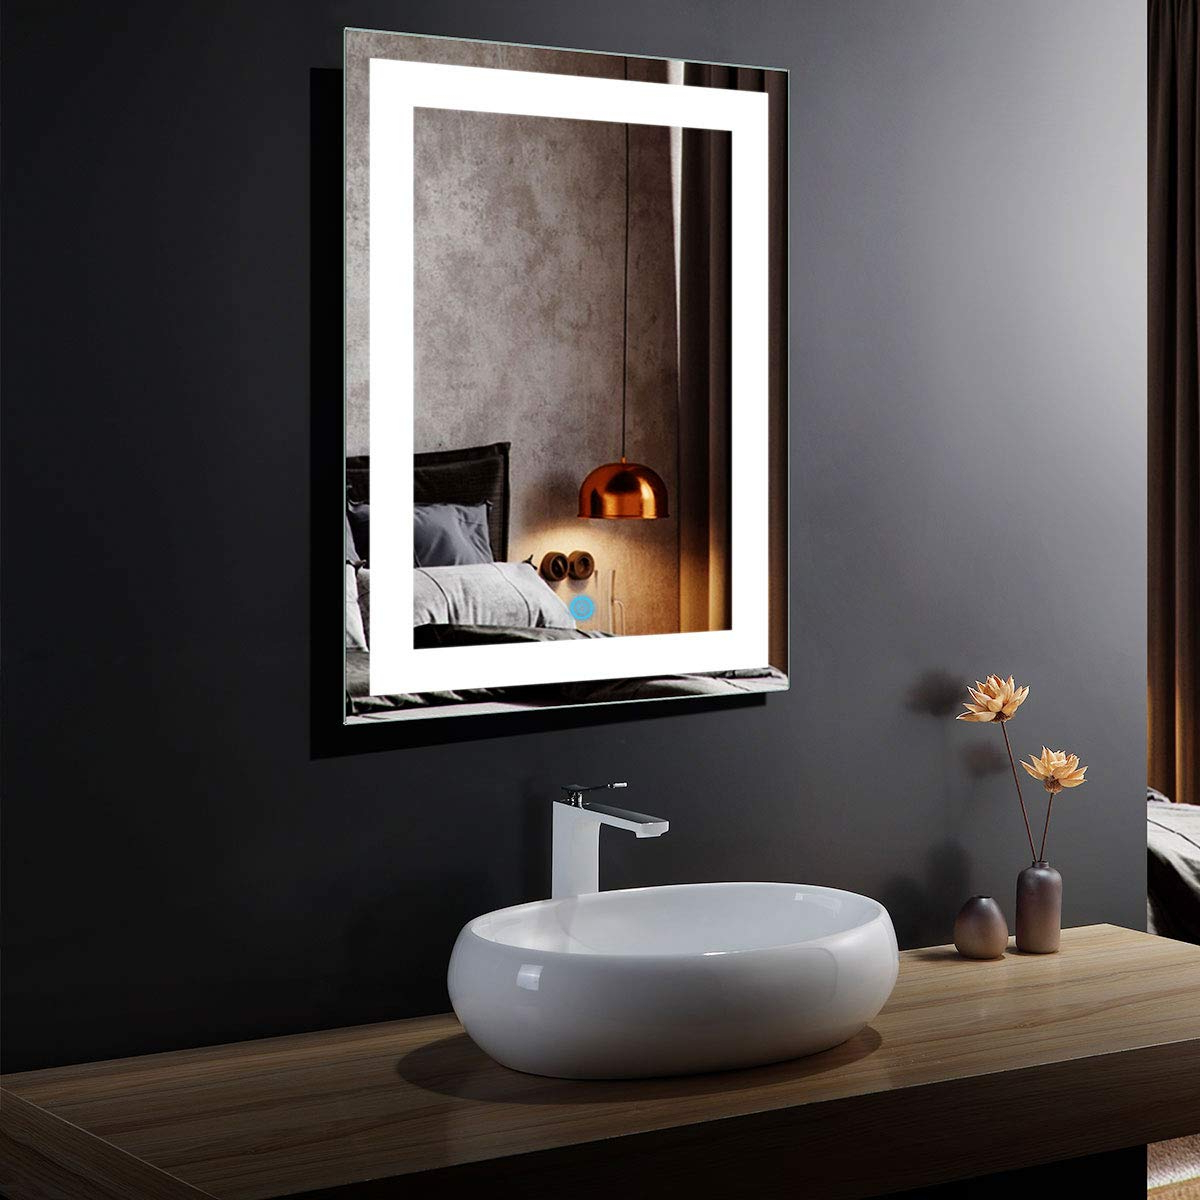 "Most Up To Date Illuminated Wall Mirrors For Bathroom In Dp Home 24"" Led Lighted Illuminated Bathroom Vanity Wall Mirror With Touch Sensor, Vertical Rectangle White Mirrors 24 X 32 In E Ck010 (Gallery 12 of 20)"